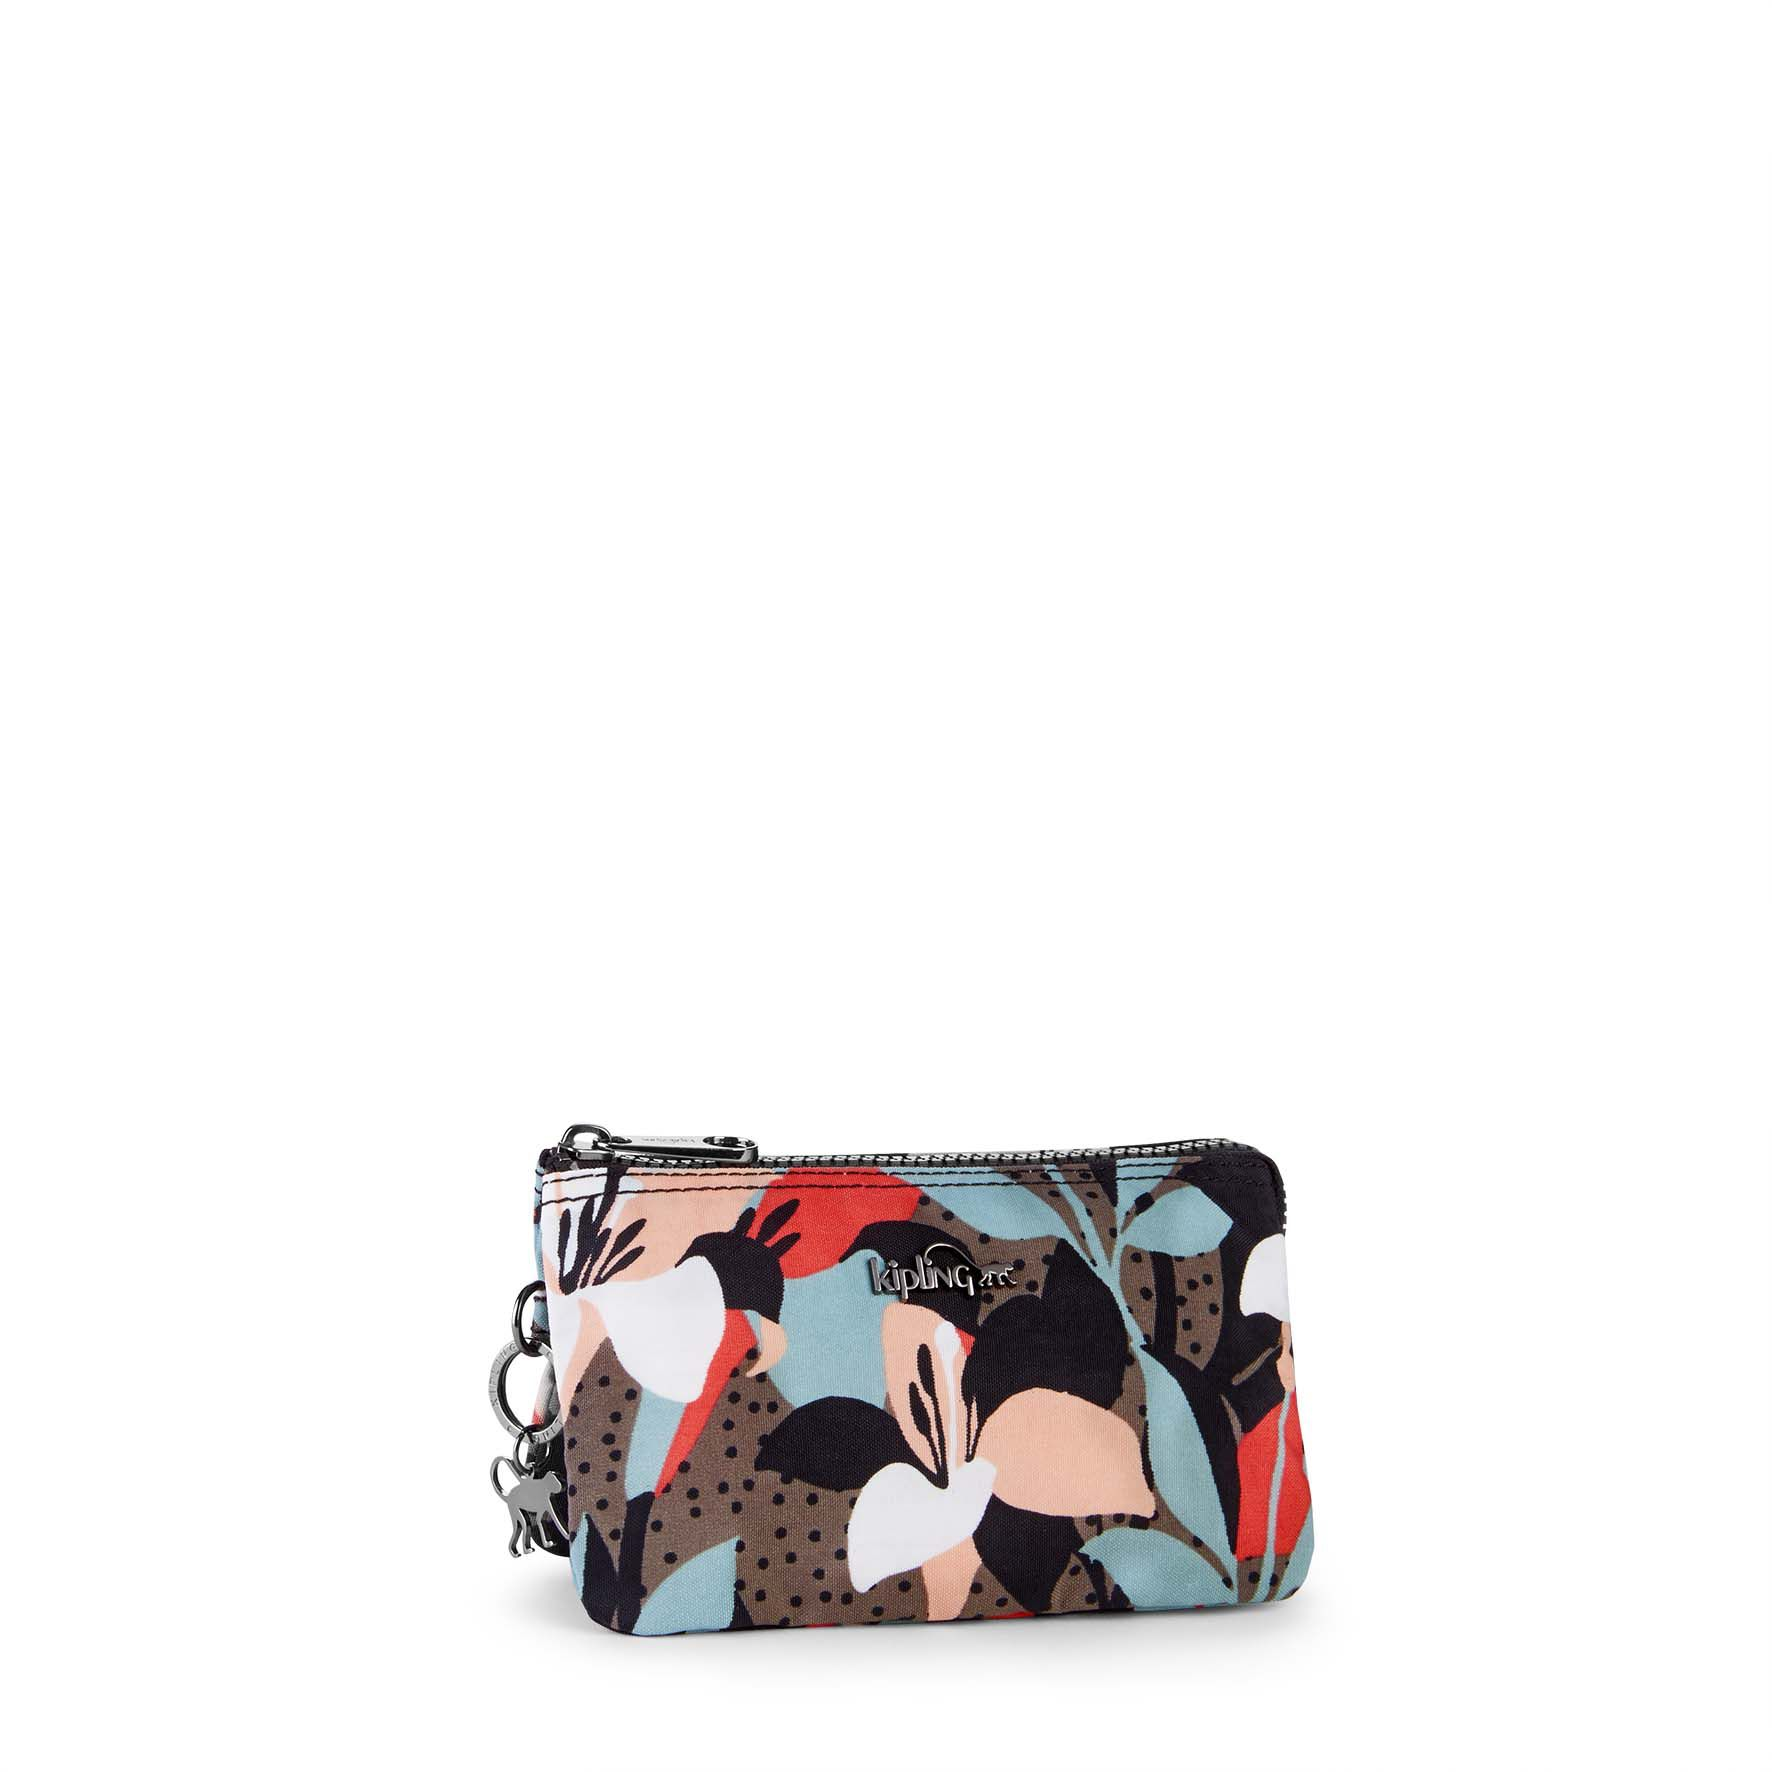 Kipling Creativity large purse Graphic Floral Print